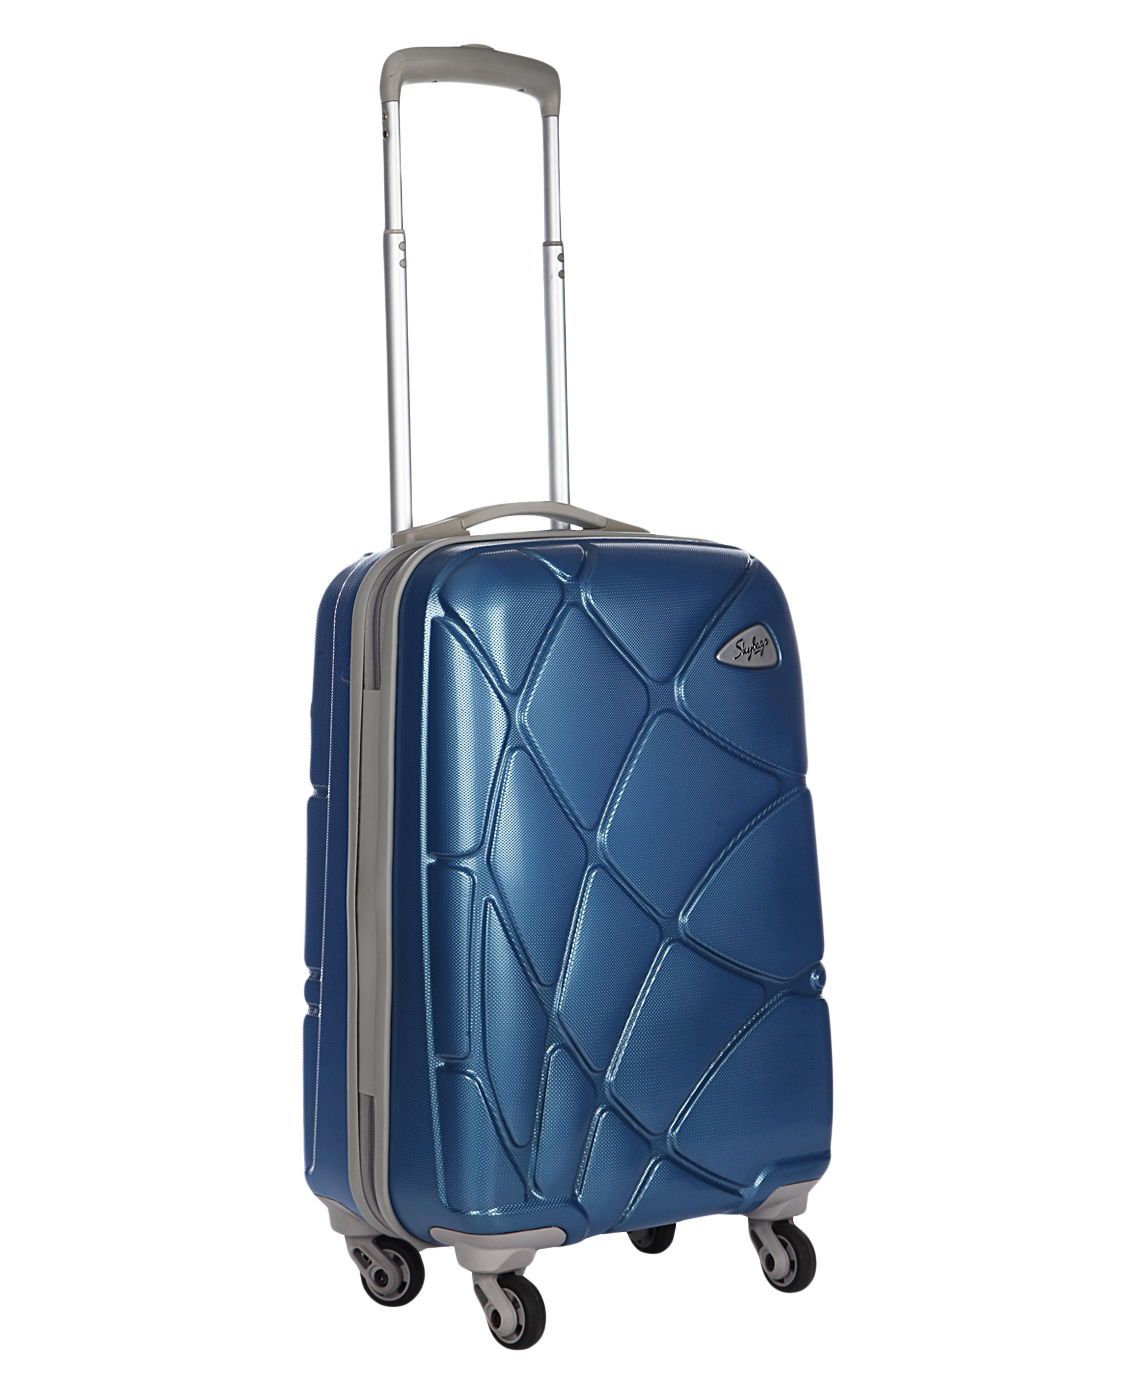 Suitcase PNG - 2560